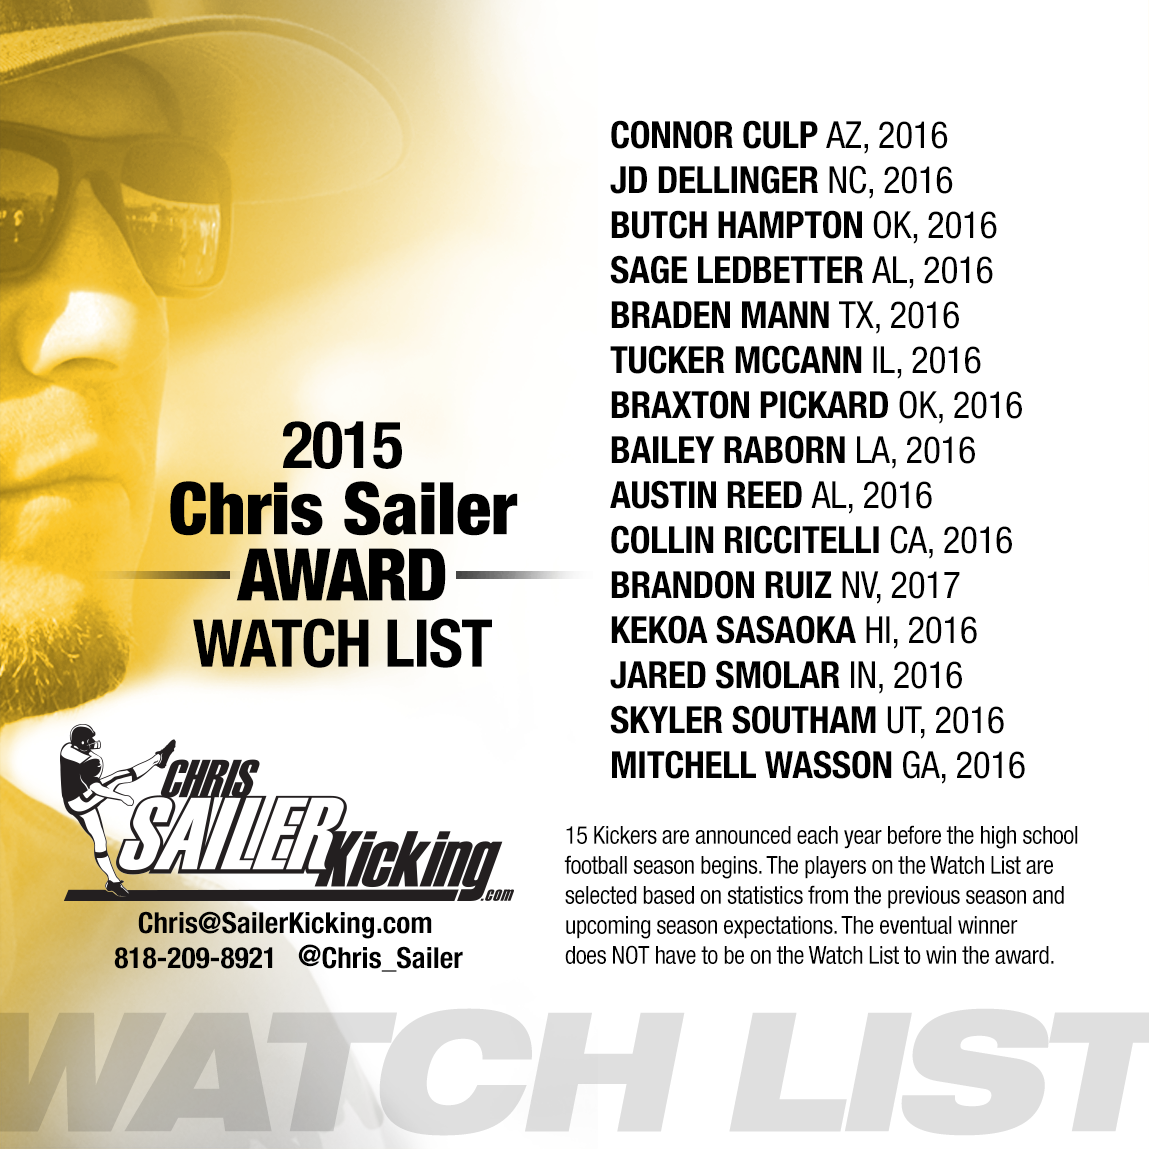 Chris Sailer Award 2015 Watch List Chris Sailer Kicking